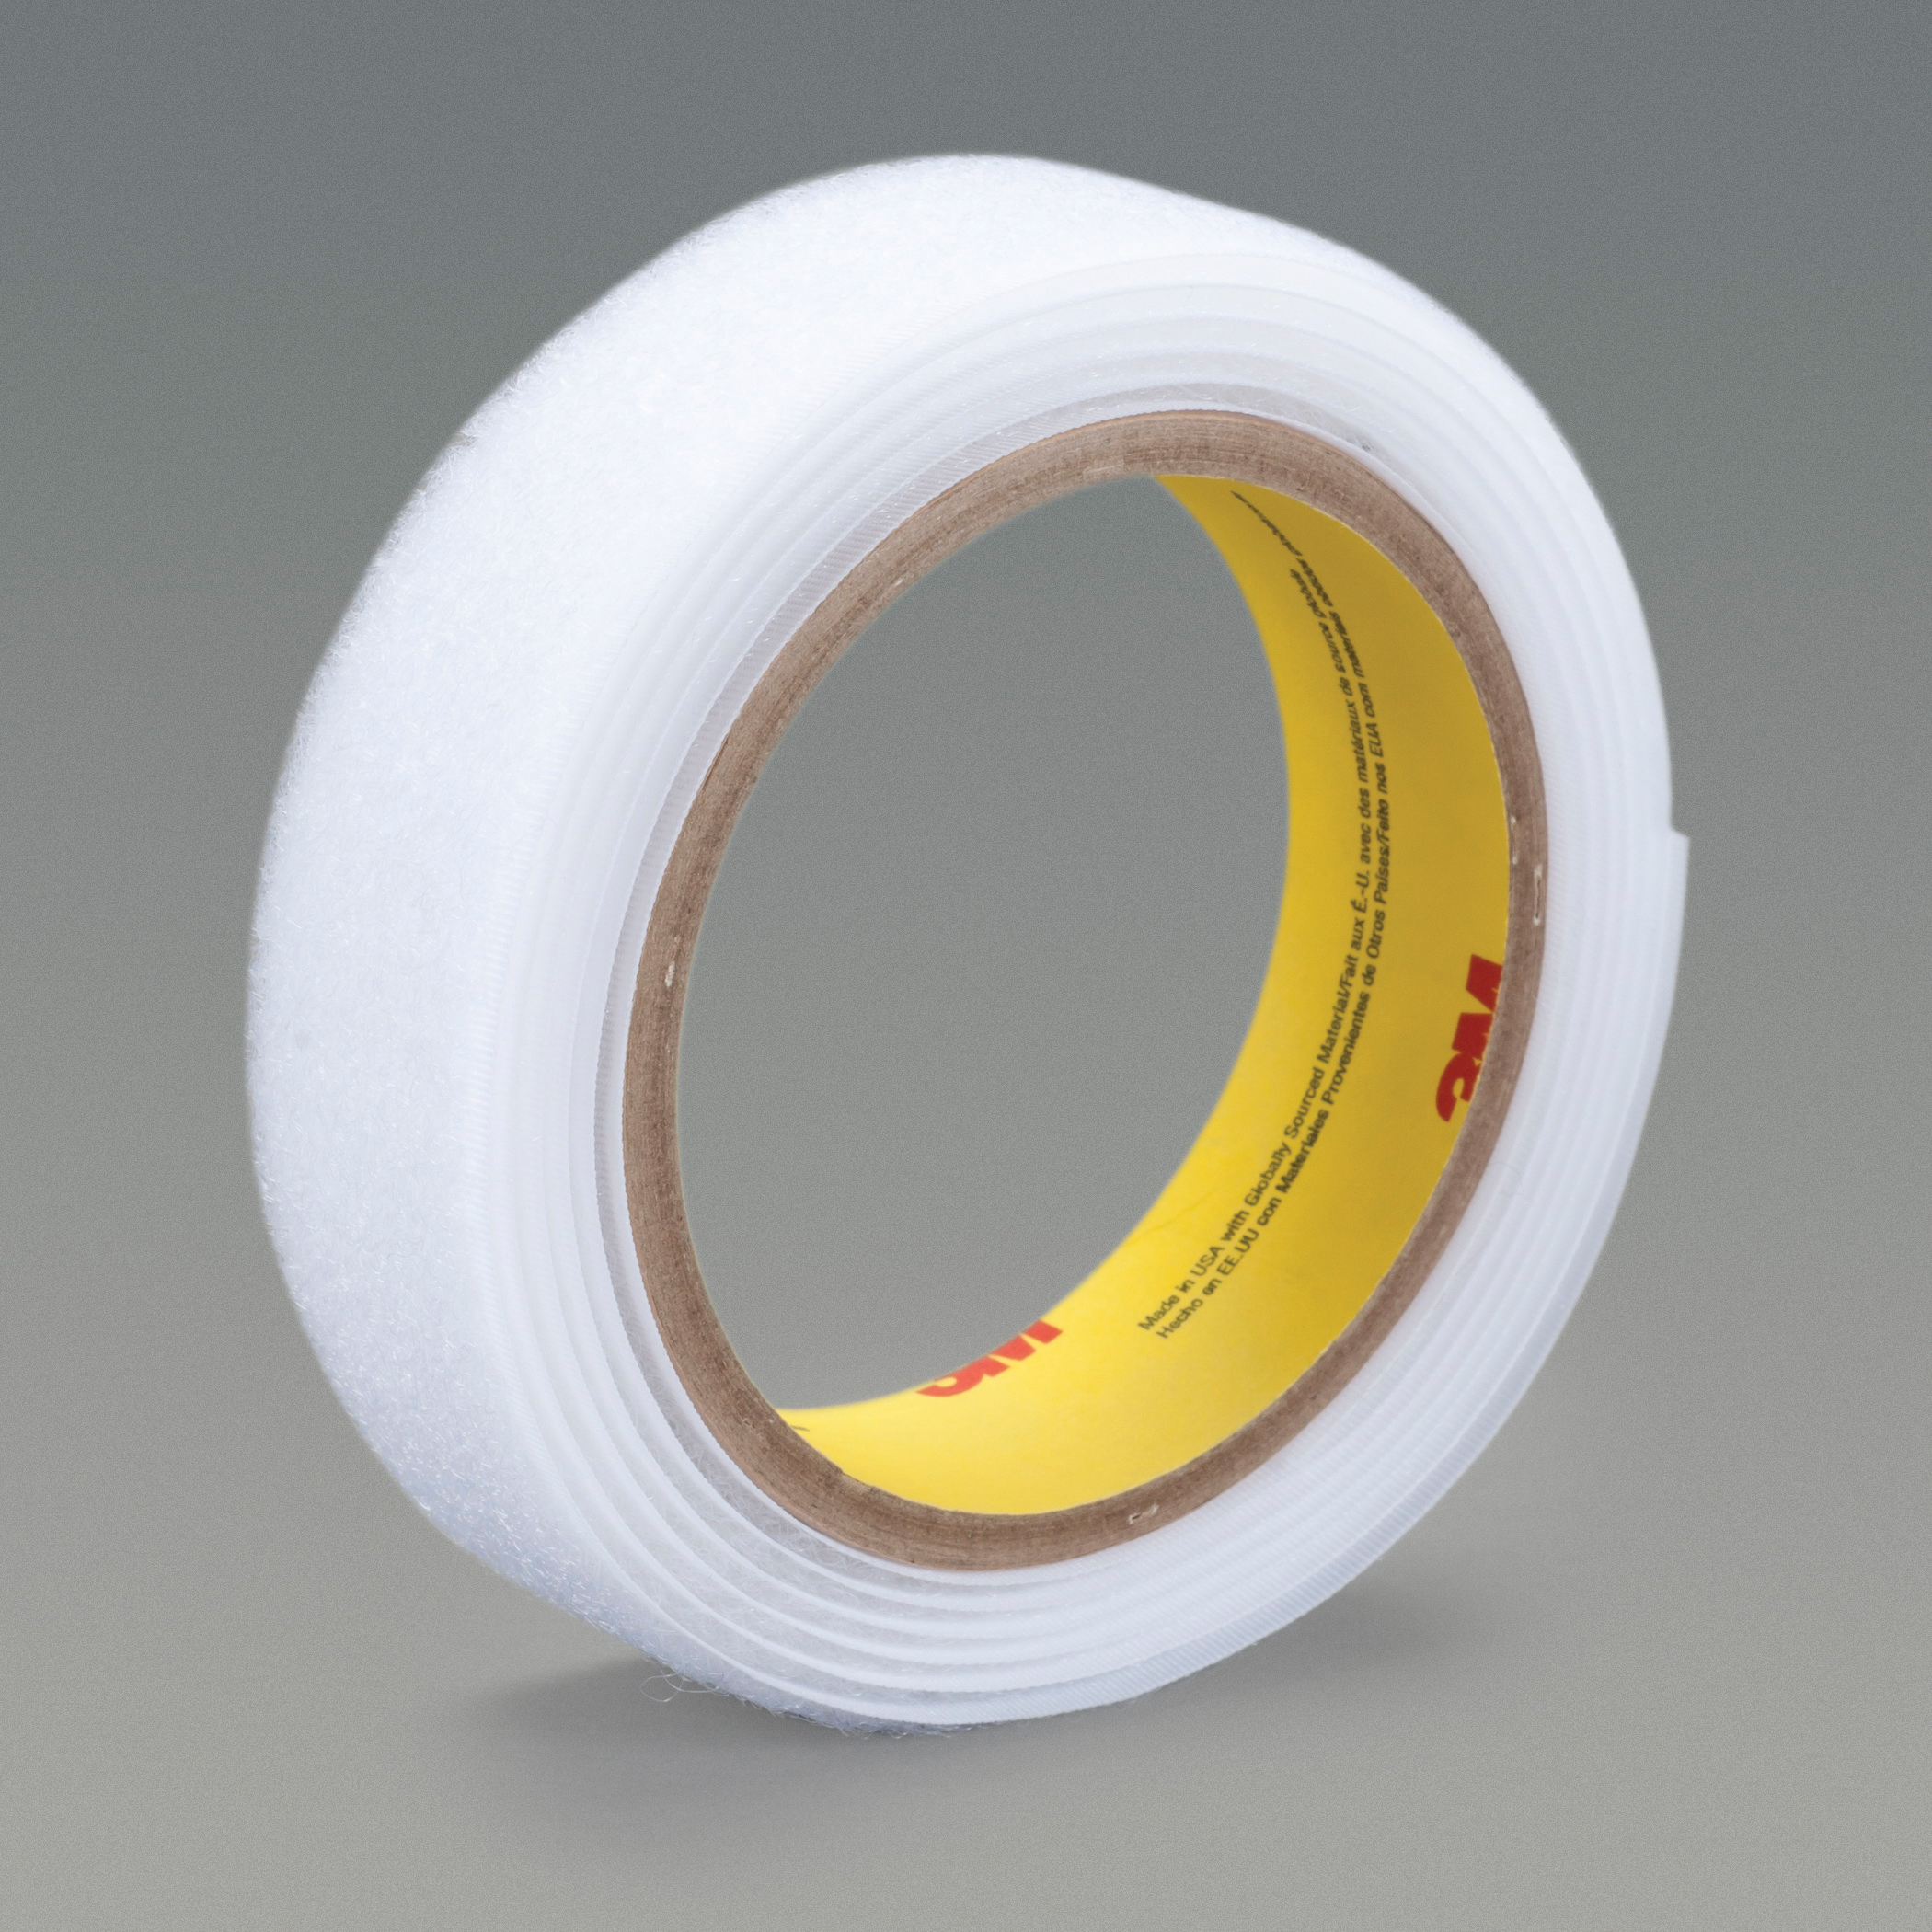 3M™ 021200-86264 Reclosable Loop Fastener Tape, 50 yd L x 5/8 in W, 0.15 in THK Engaged, Synthetic Rubber Adhesive, Woven Nylon Backing, White